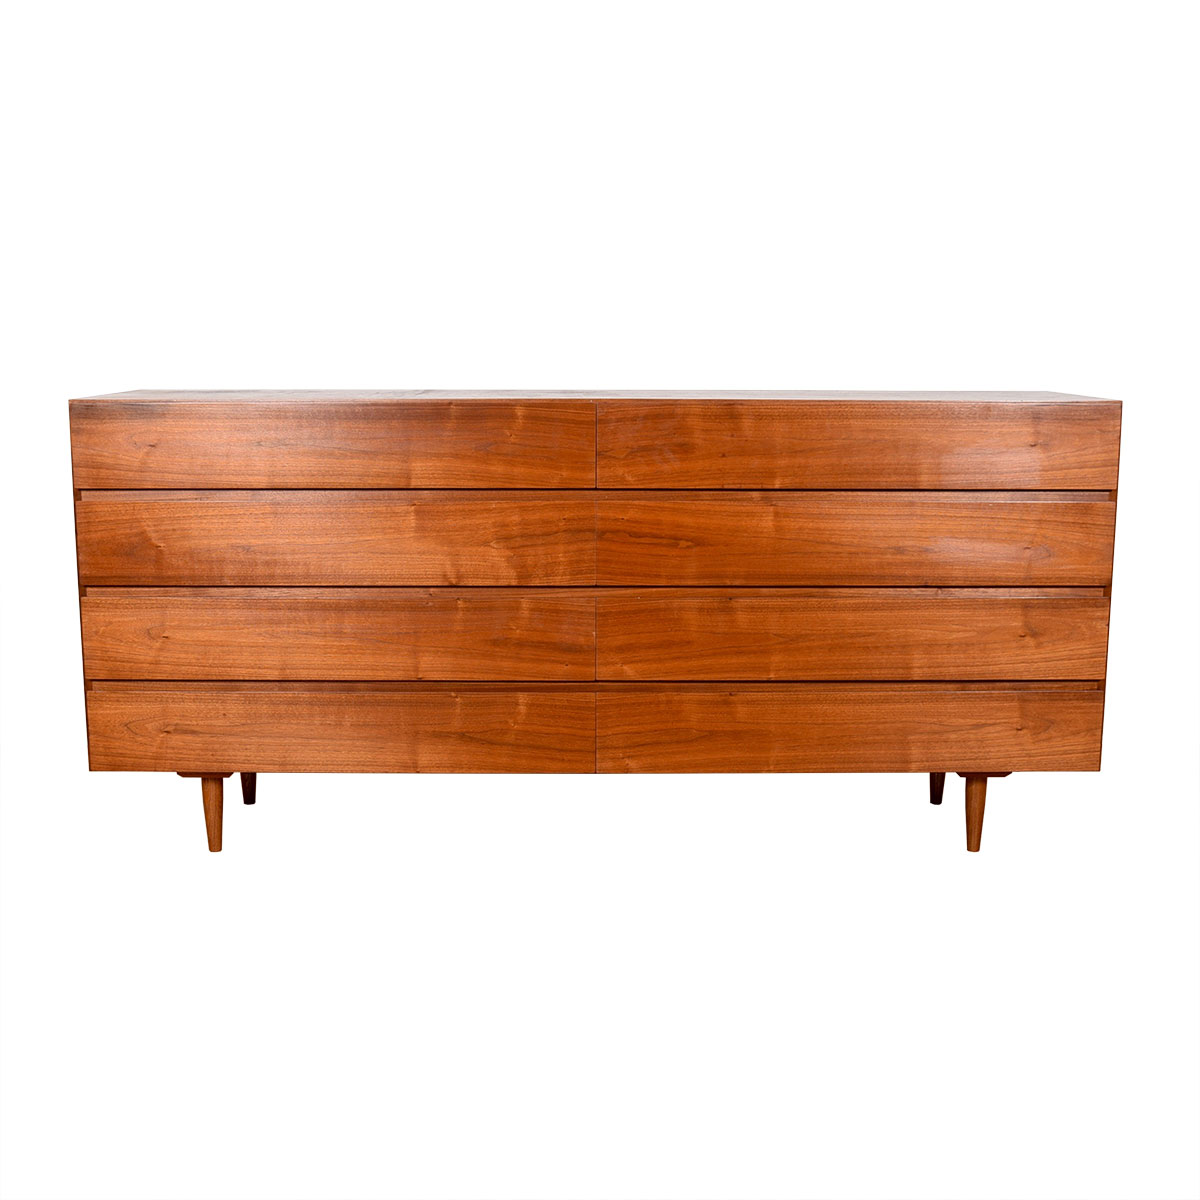 Danish Modern Teak Long 8-Drawer Dresser